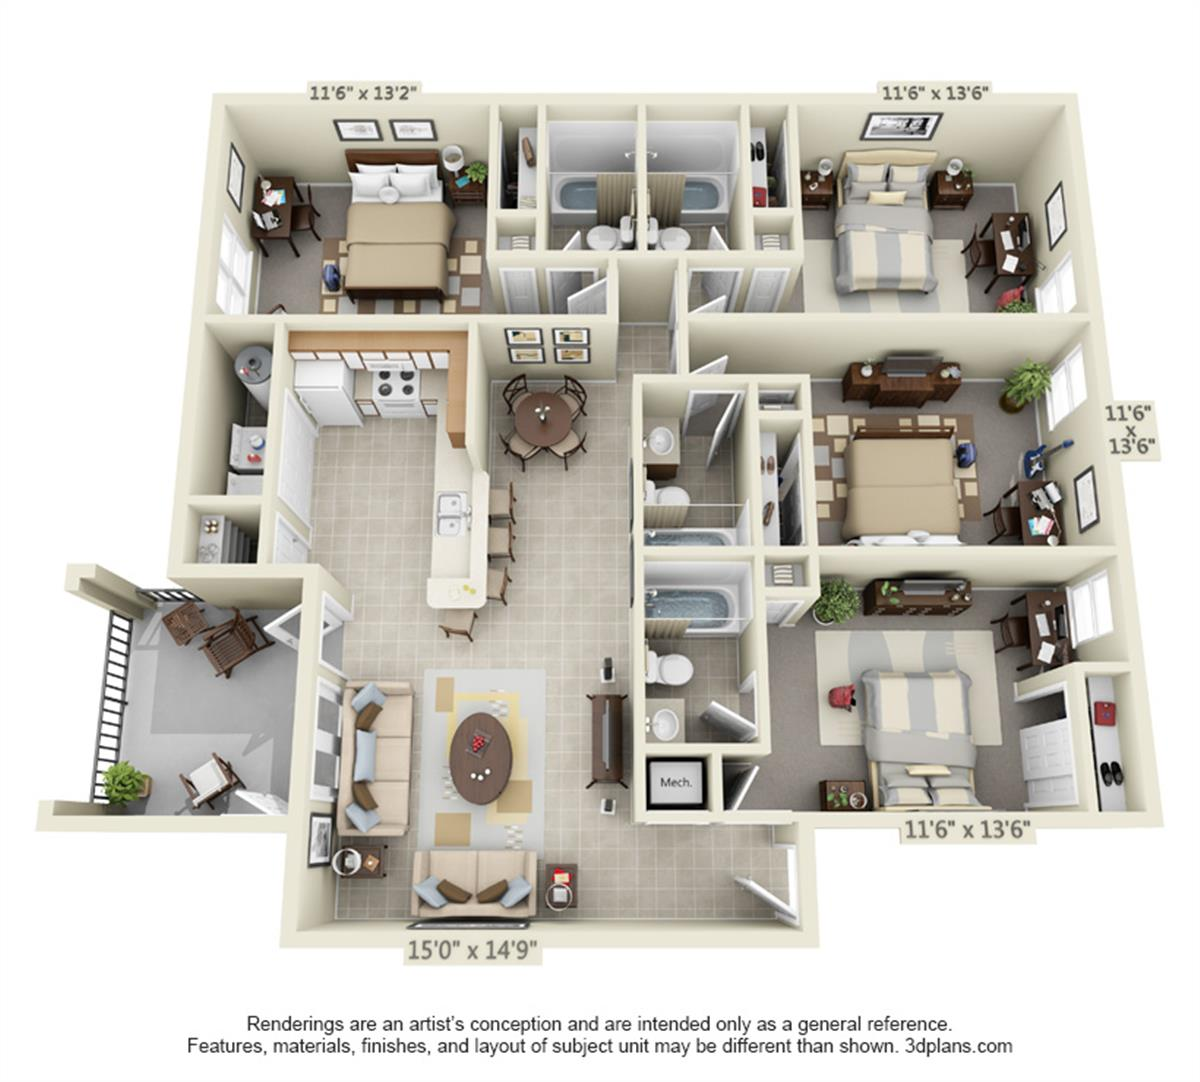 Luxury 4 bedroom apartment floor plans for Apartment design guide part 4